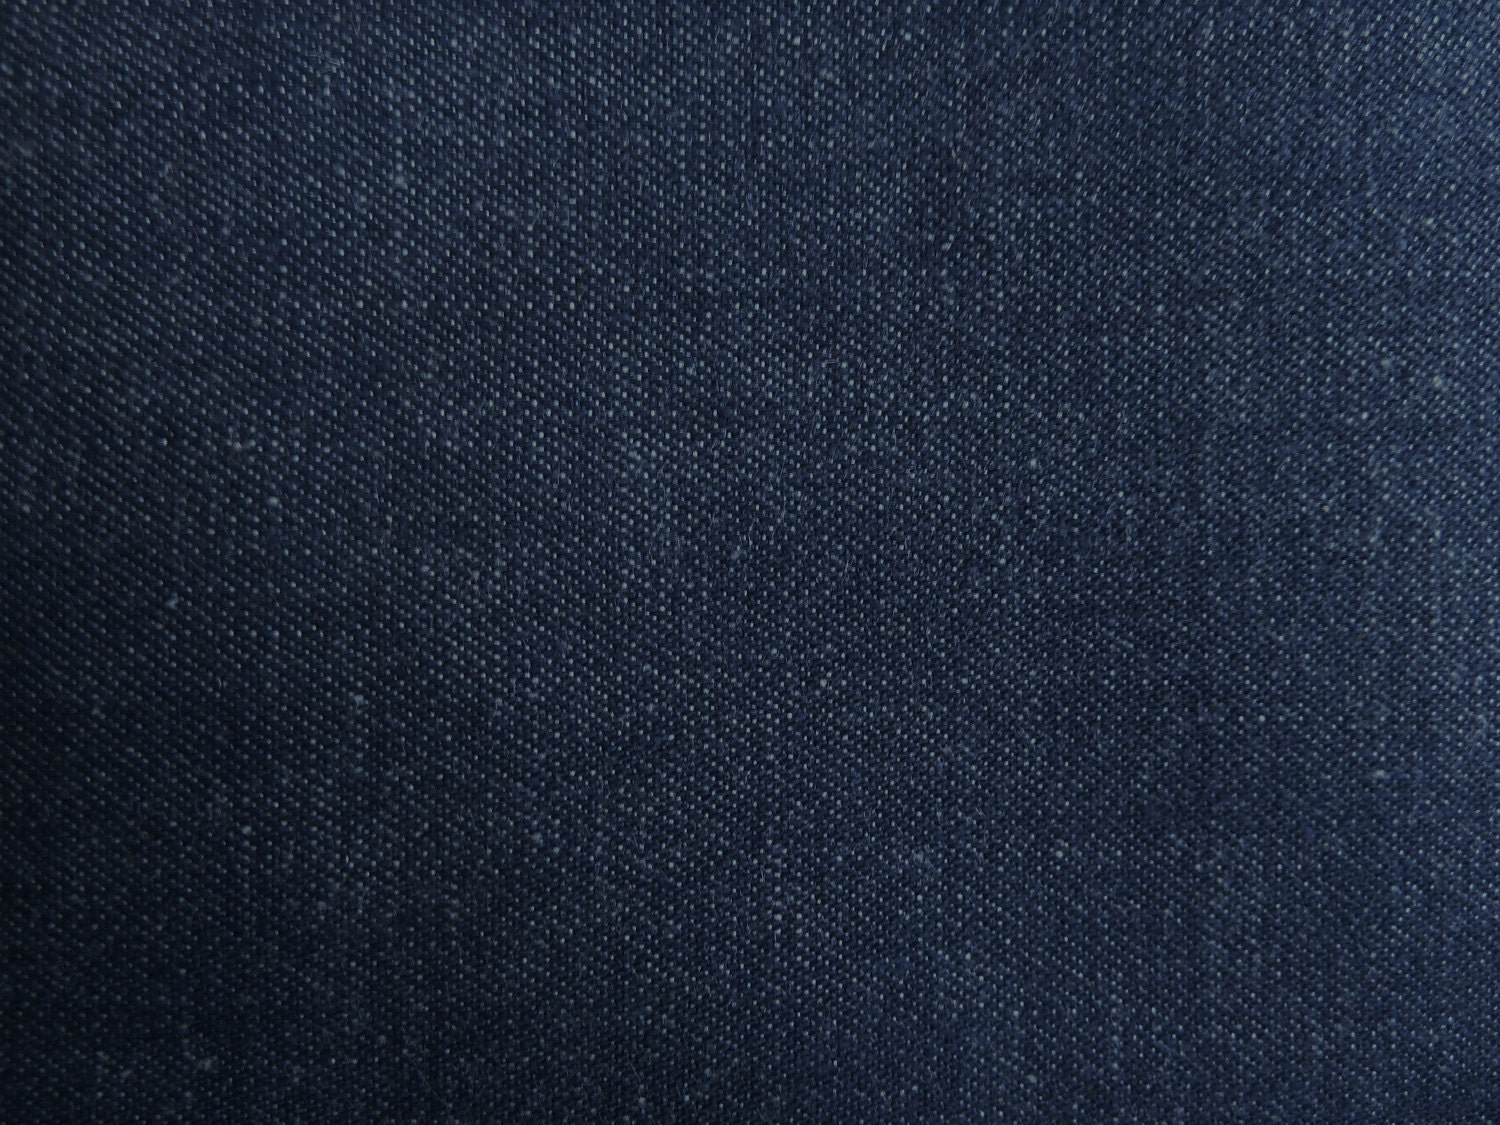 Blue denim fabric sale use coupon code sochi10 for an extra for Denim fabric